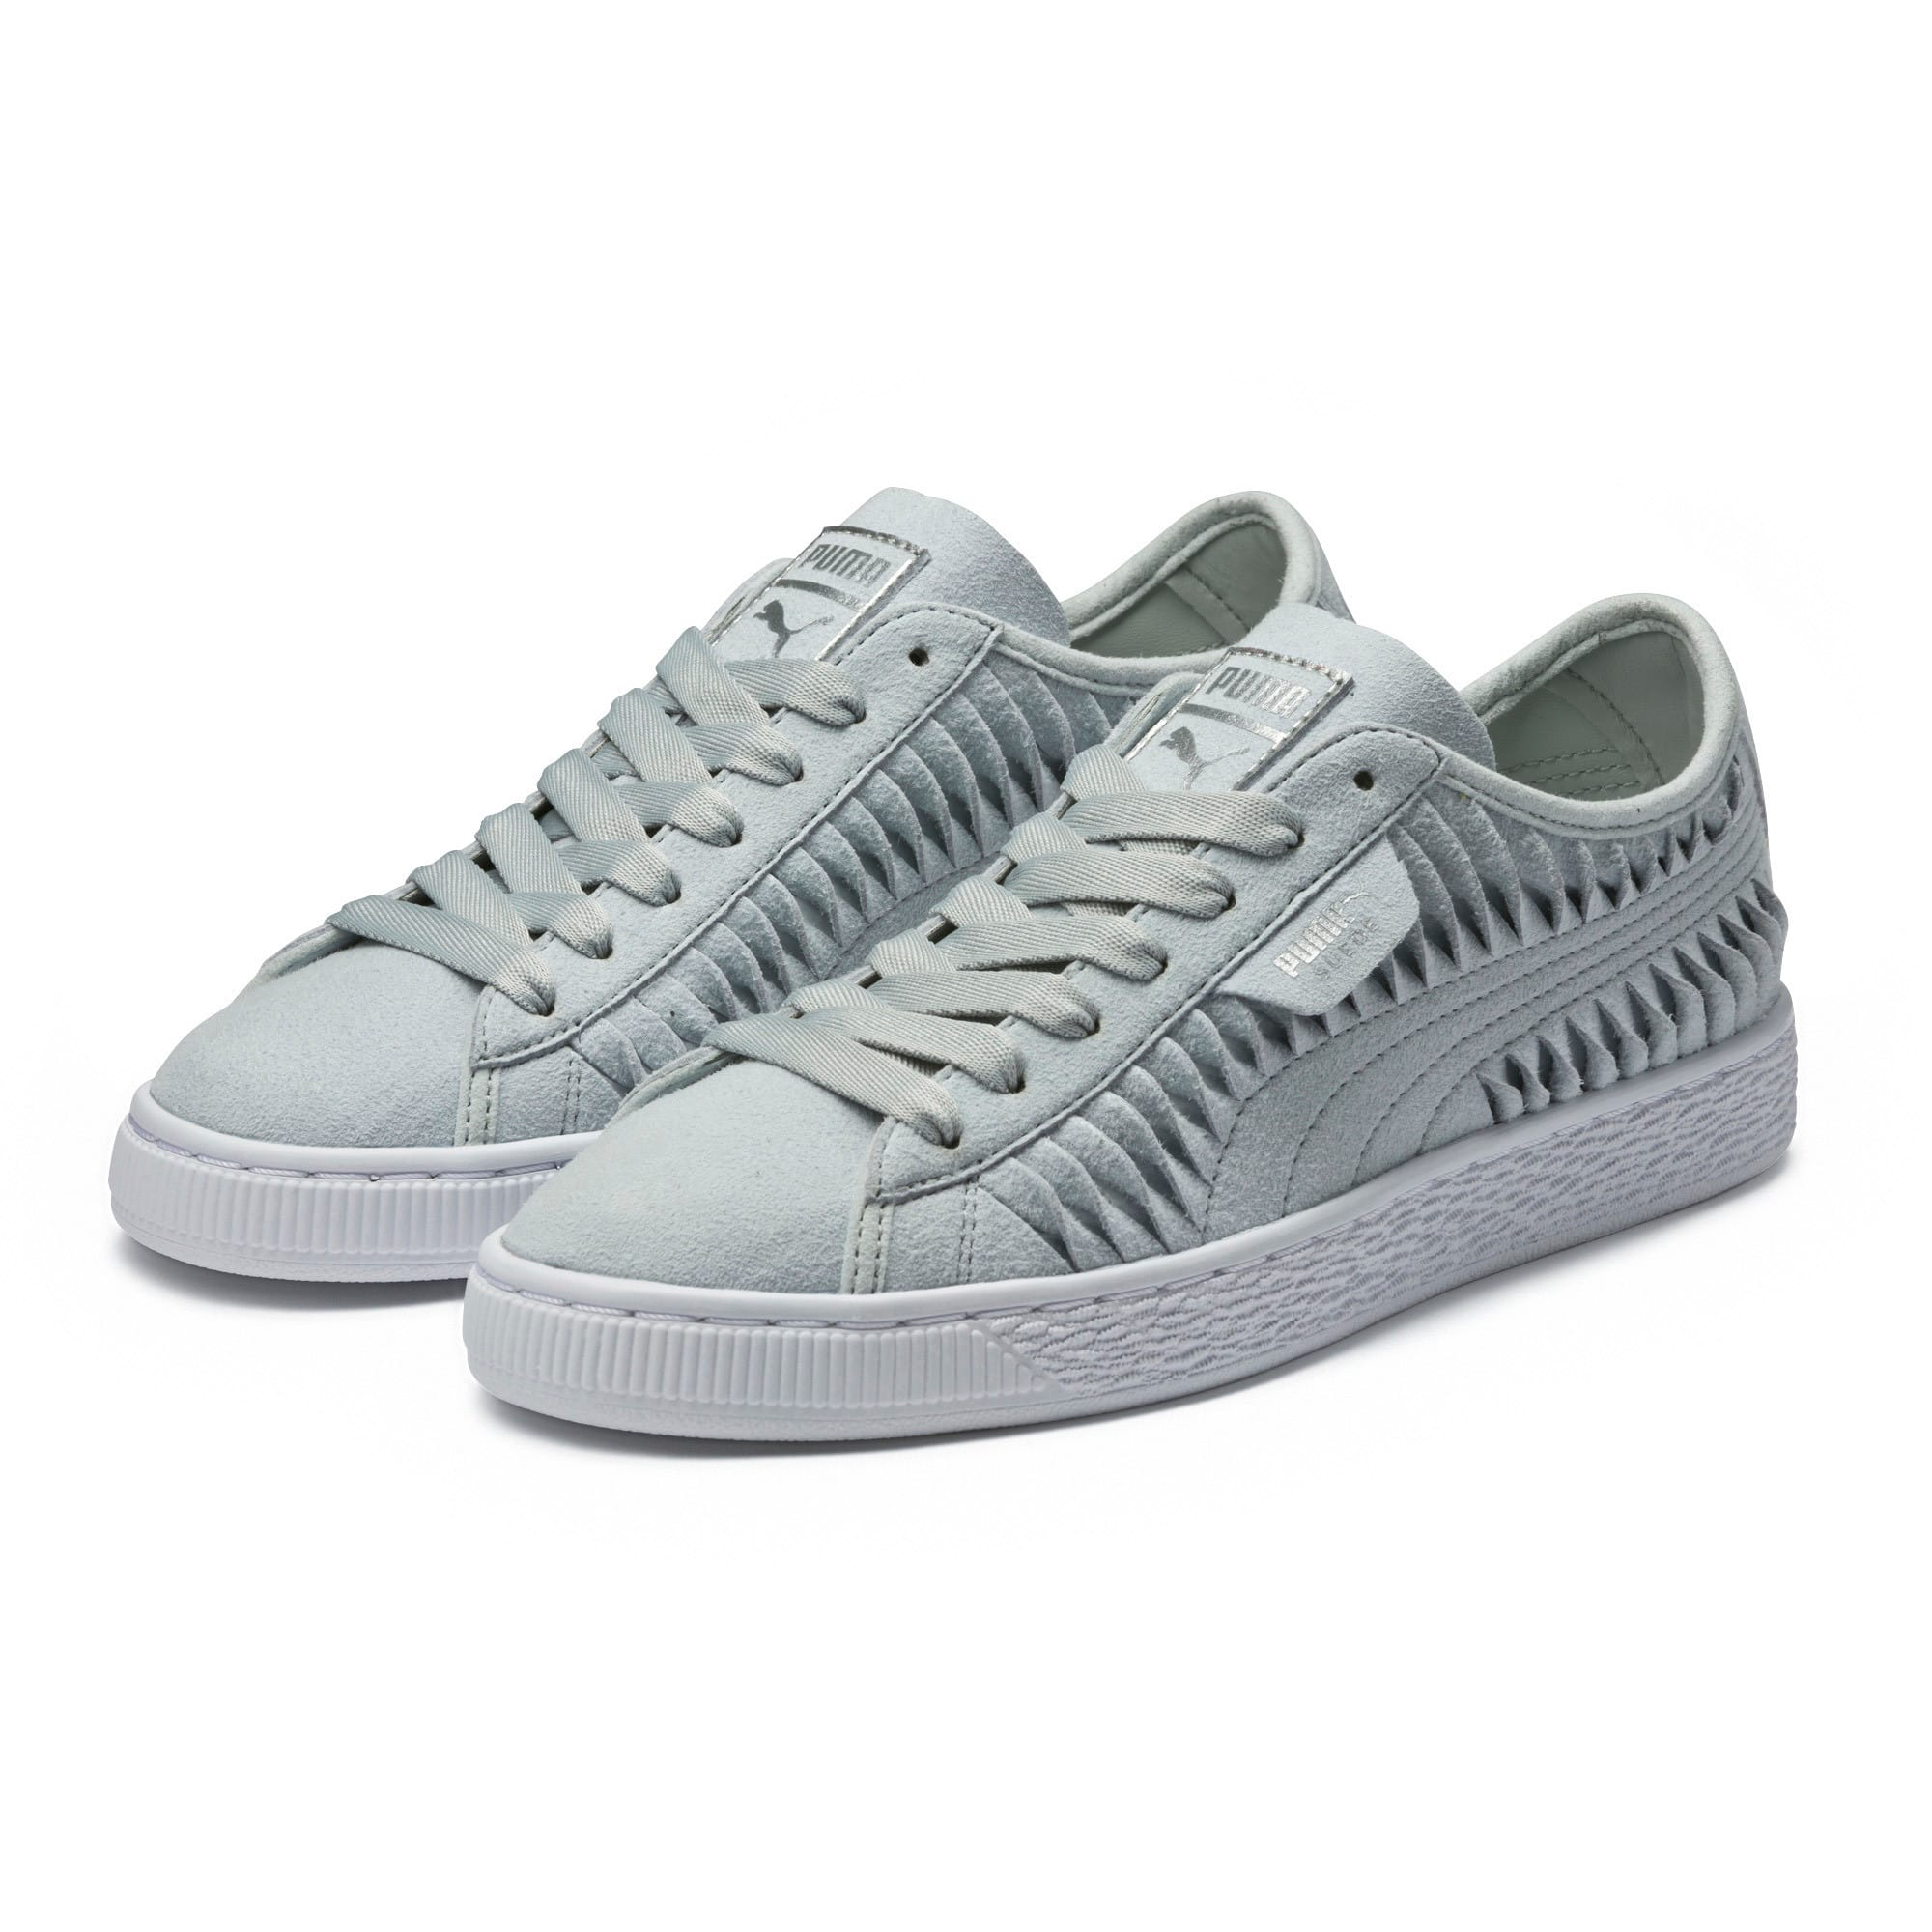 Thumbnail 2 of Suede Metallic Entwine Women's Trainers, Glacier Gray-Silver, medium-IND